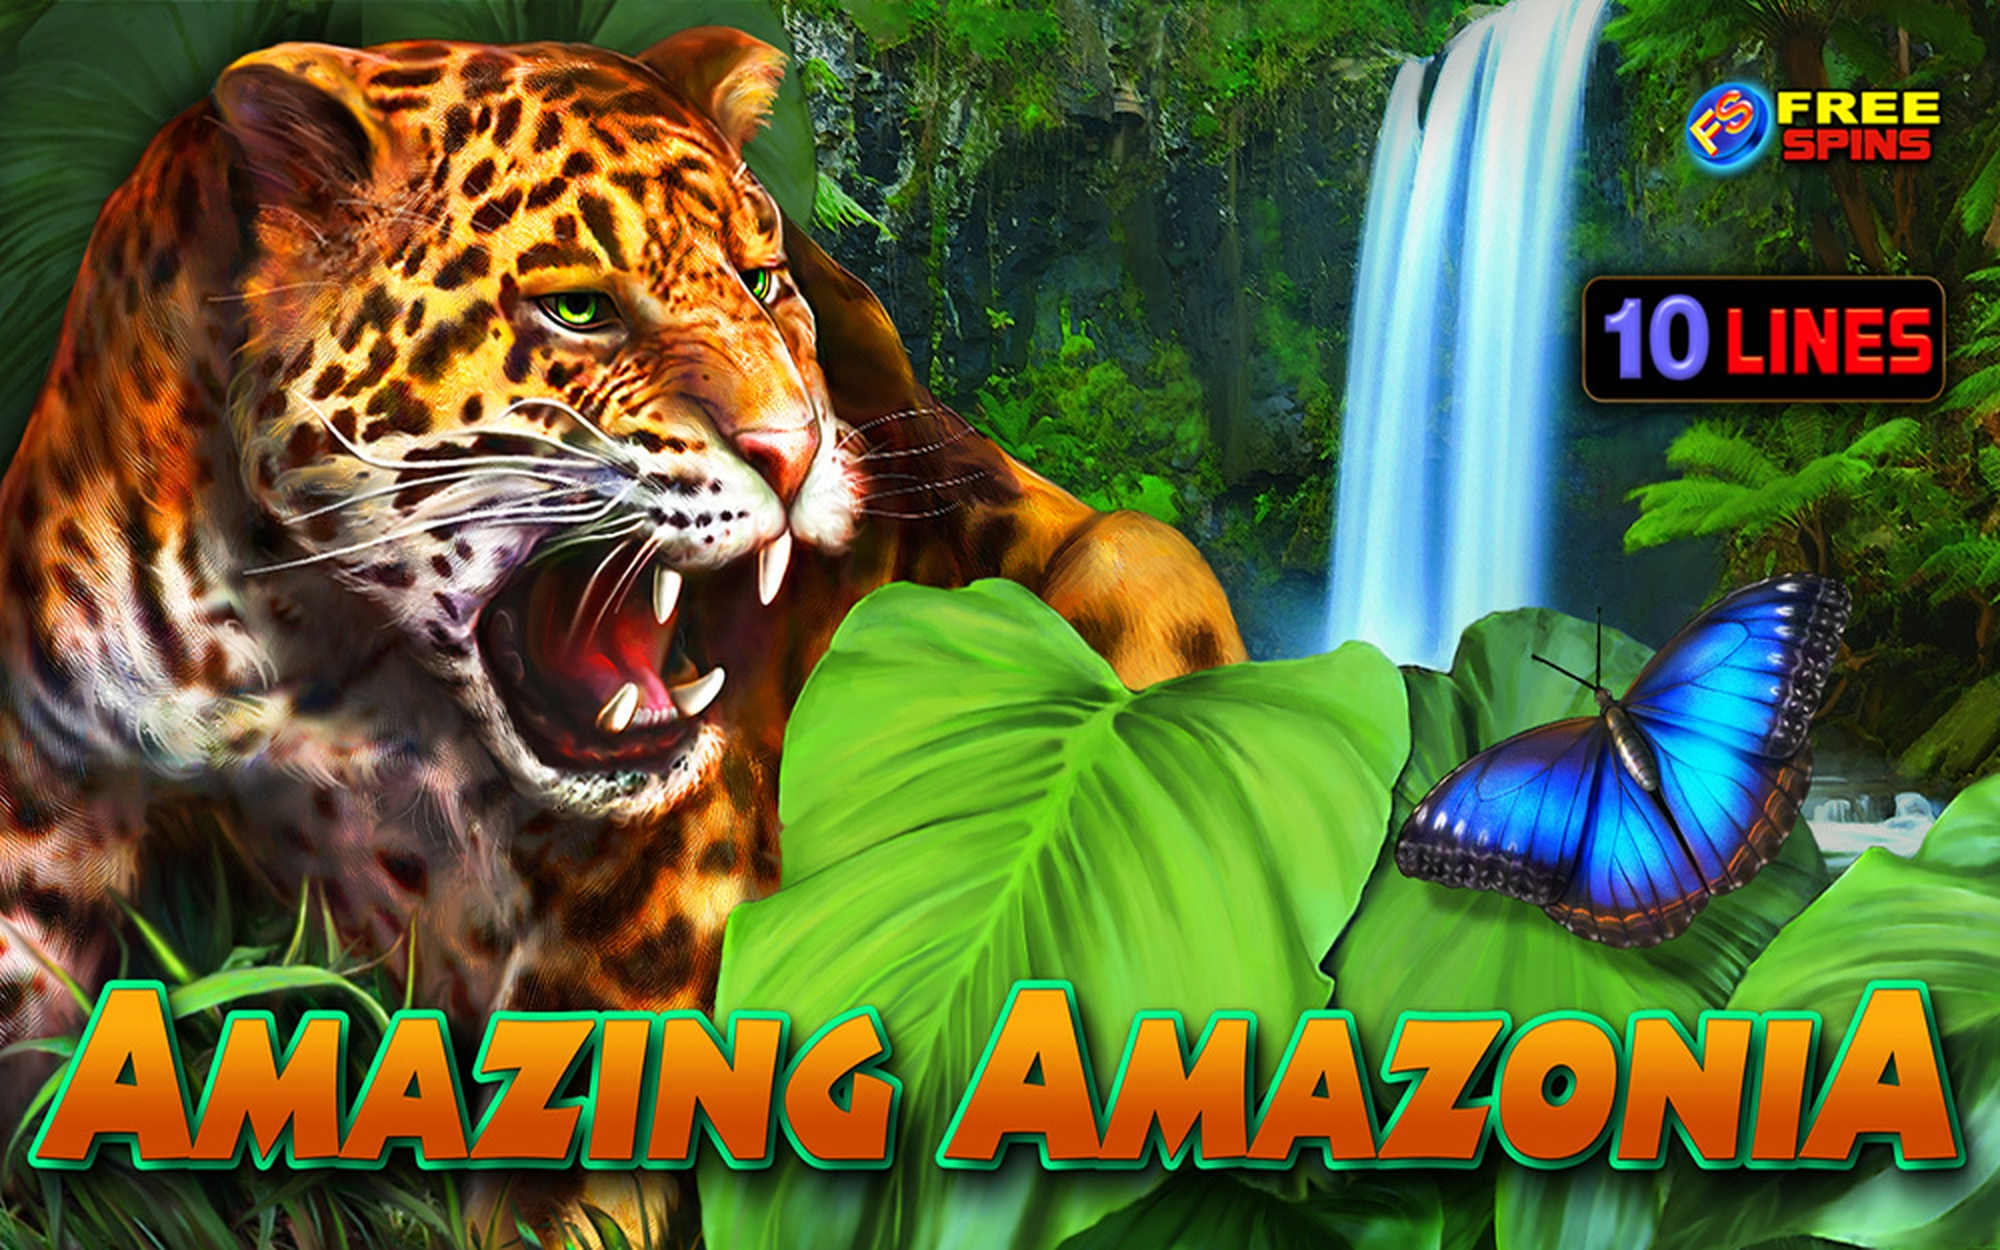 The Amazing Amazonia Online Slot Demo Game by EGT